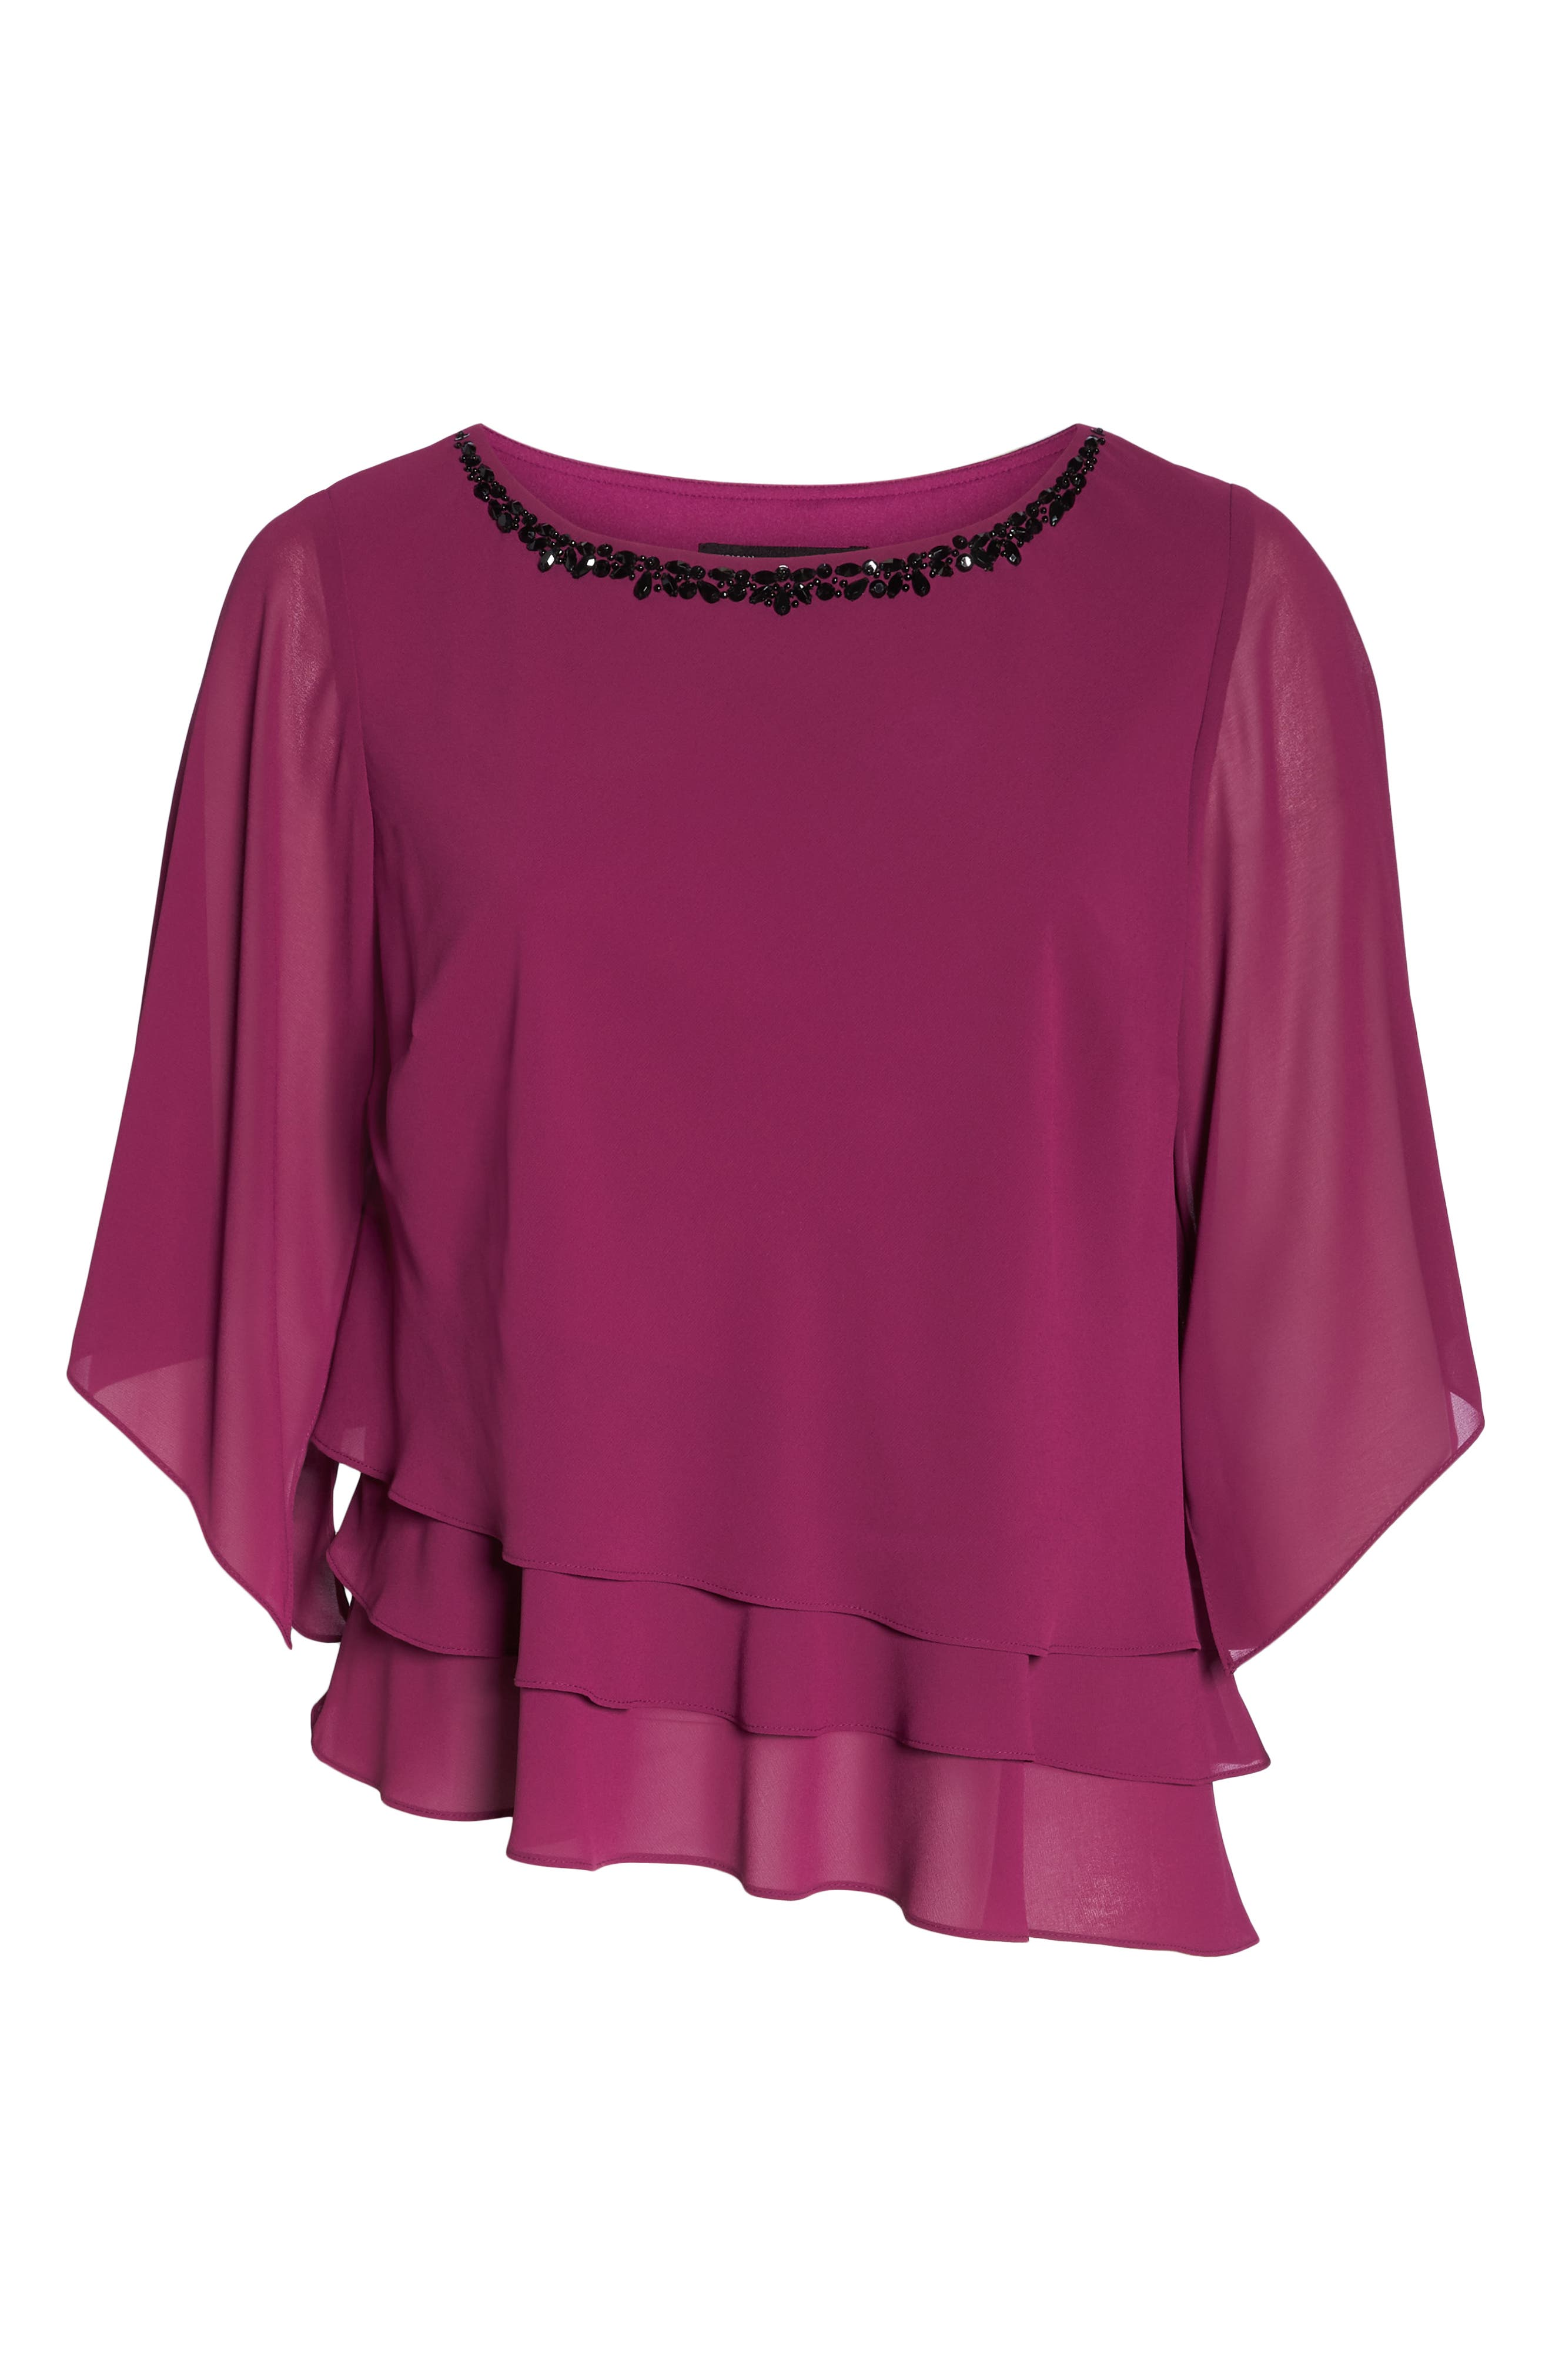 Embellished Tiered Chiffon Top,                             Alternate thumbnail 7, color,                             ALALEA